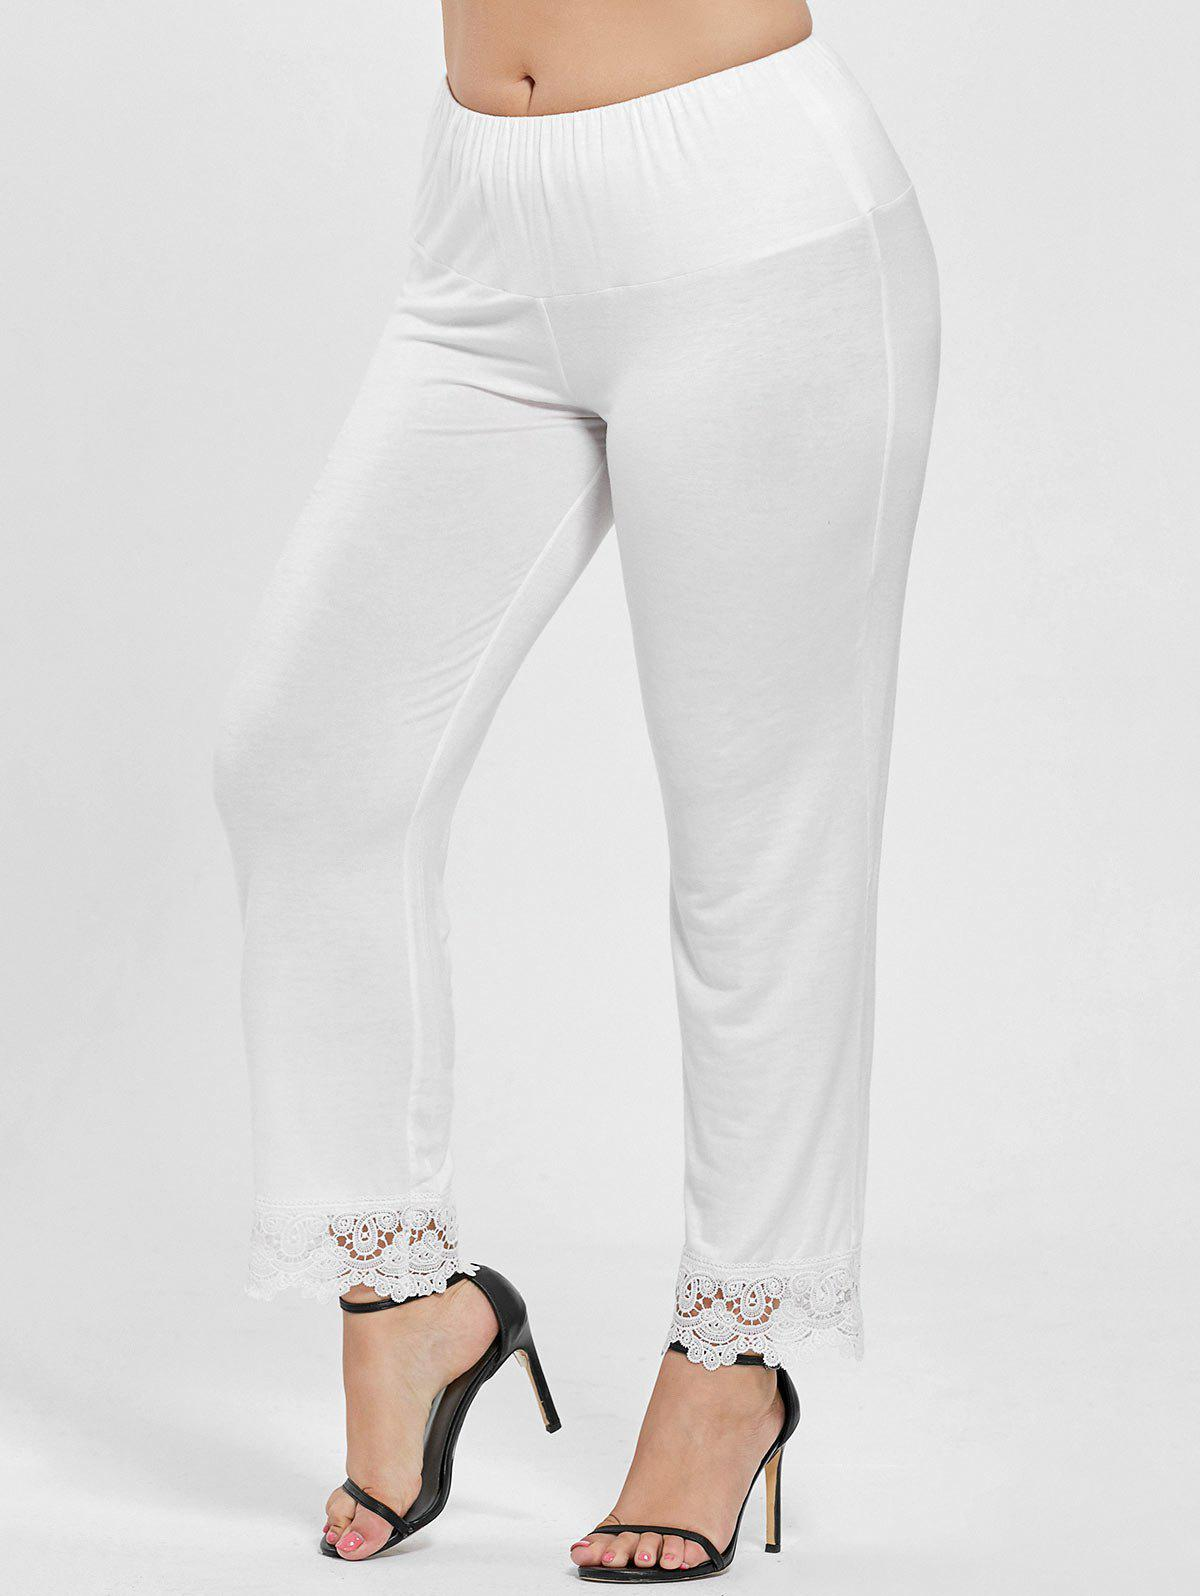 Plus Size Lace Trim High Waist Pants, White